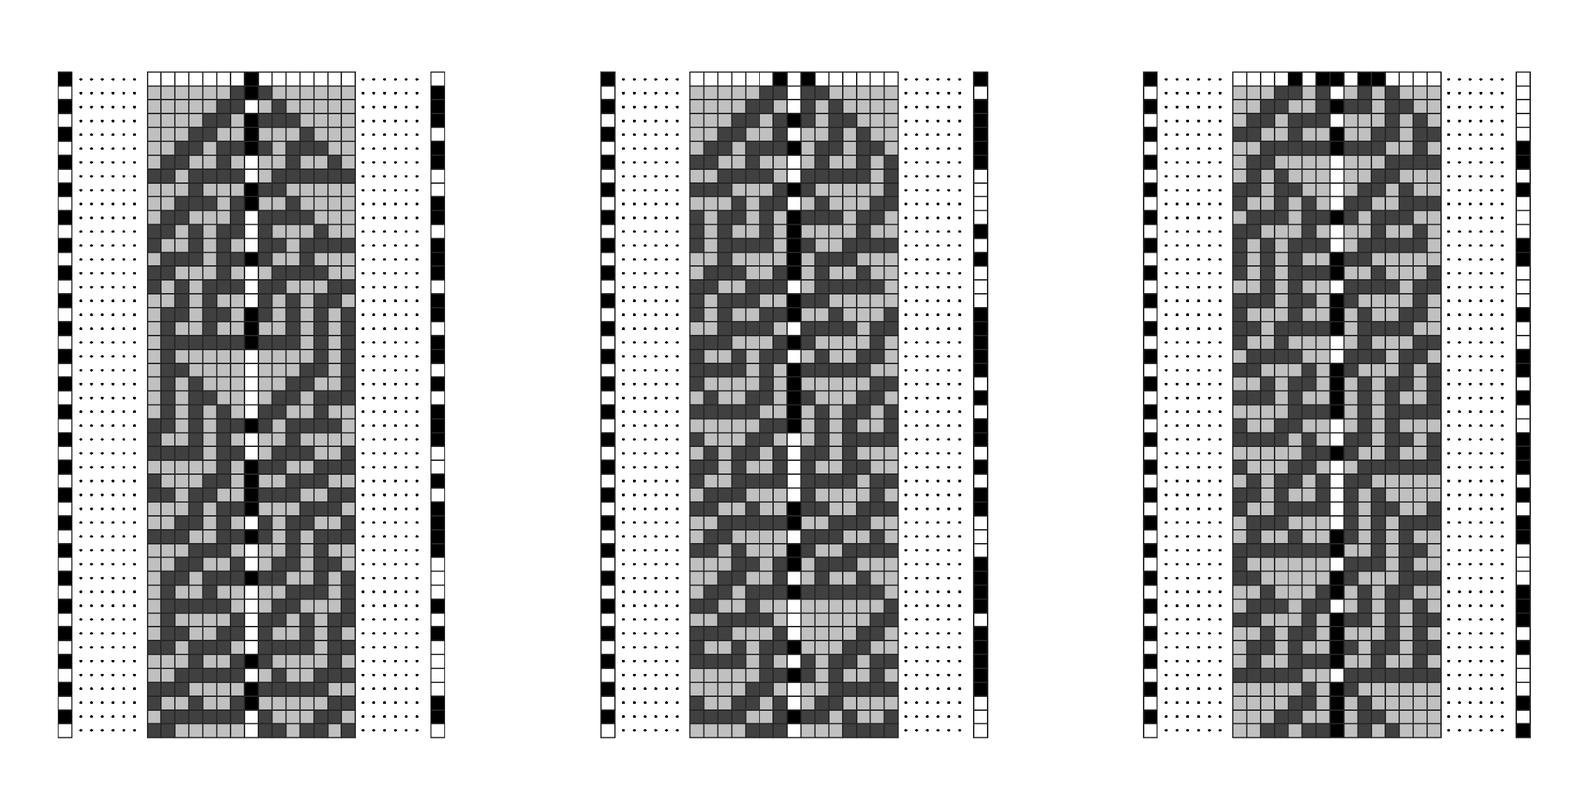 Encryption using a column of rule 30 as the encrypting sequence